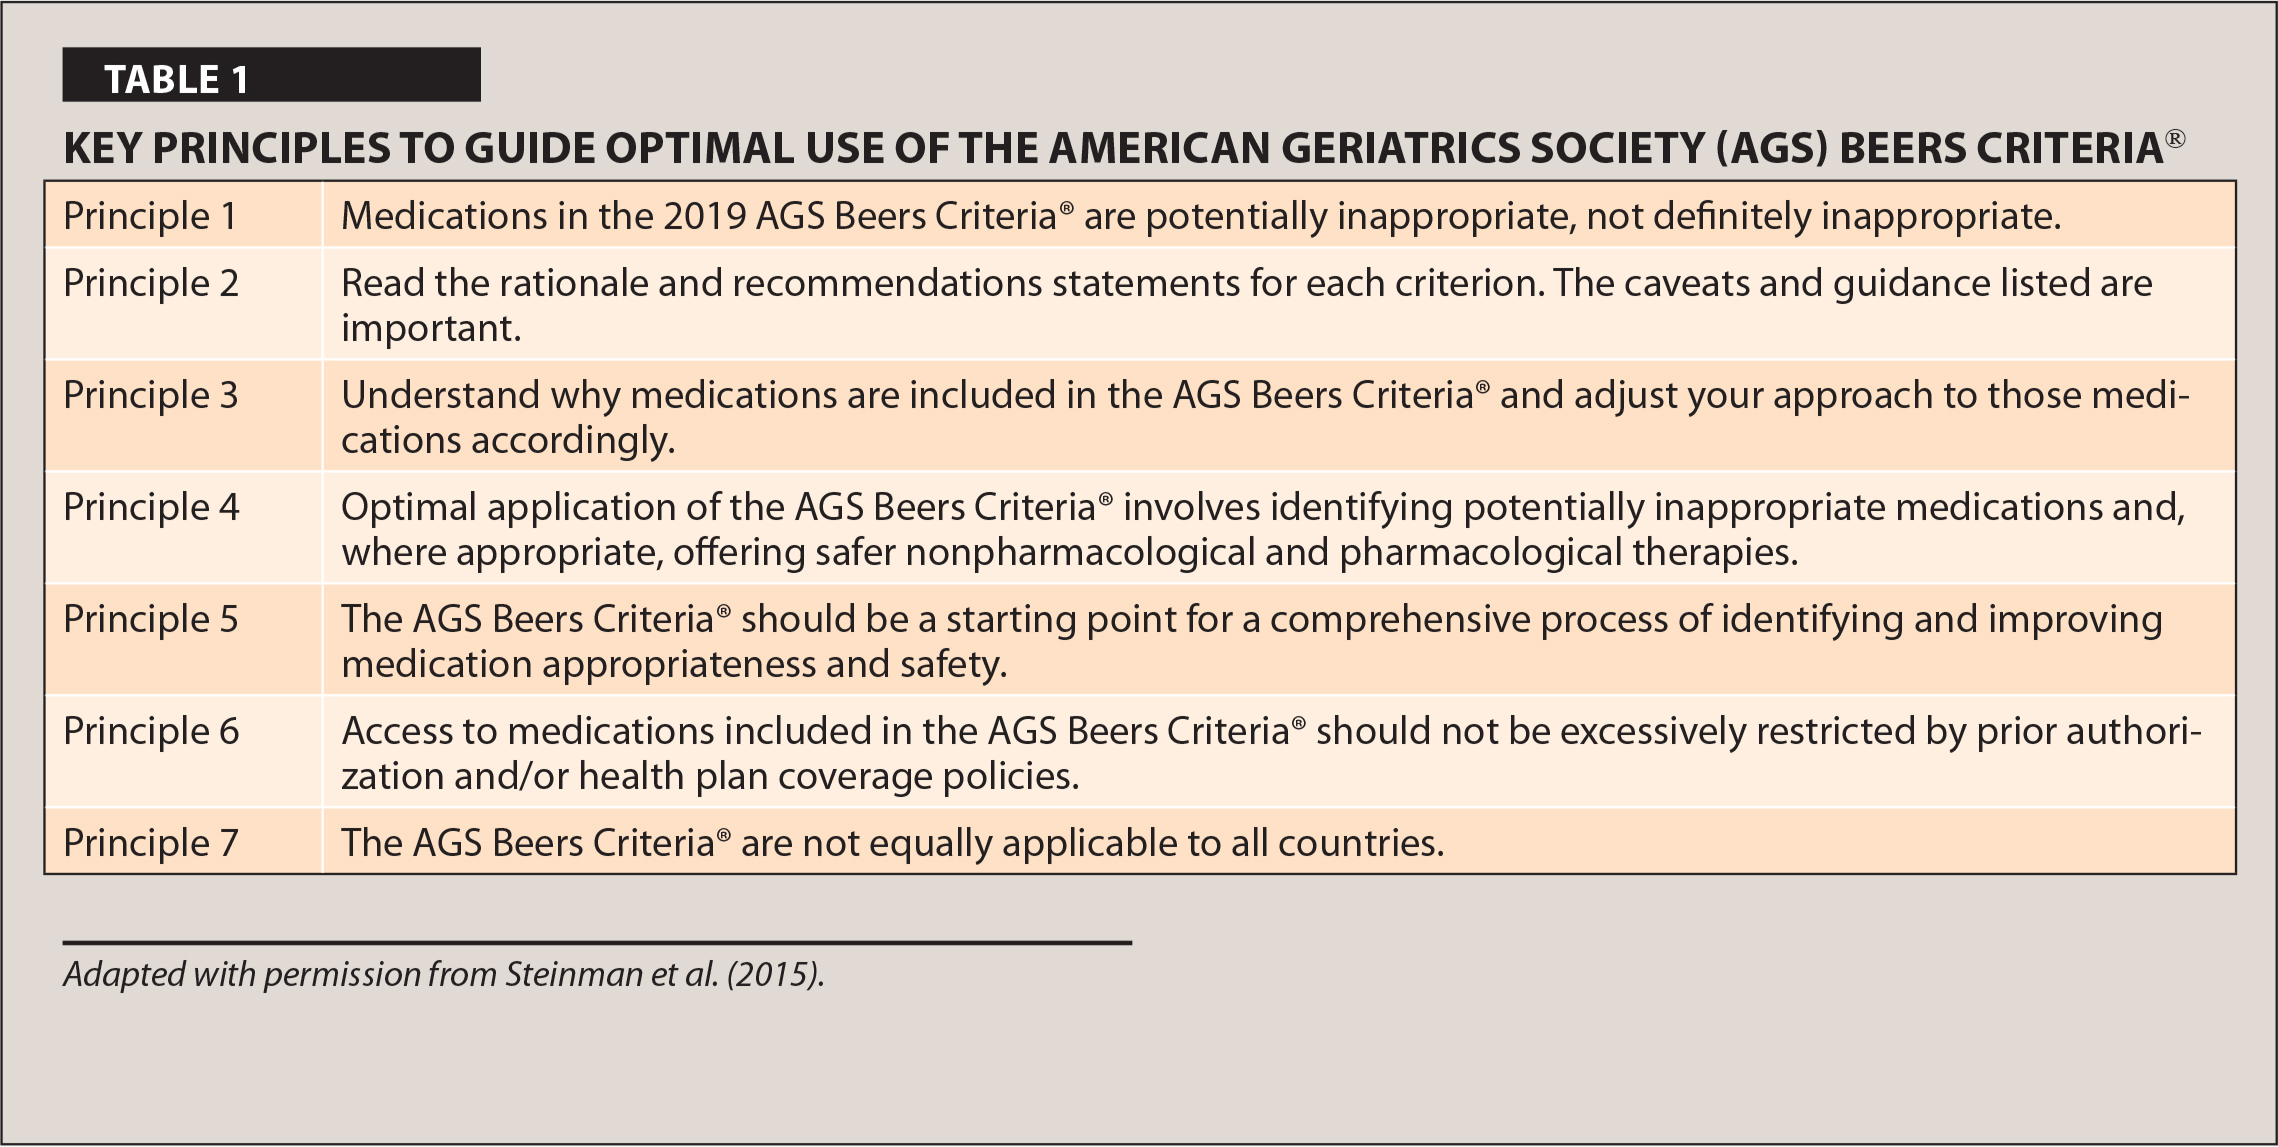 Key Principles to Guide Optimal use of the American Geriatrics Society (AGS) Beers Criteria®